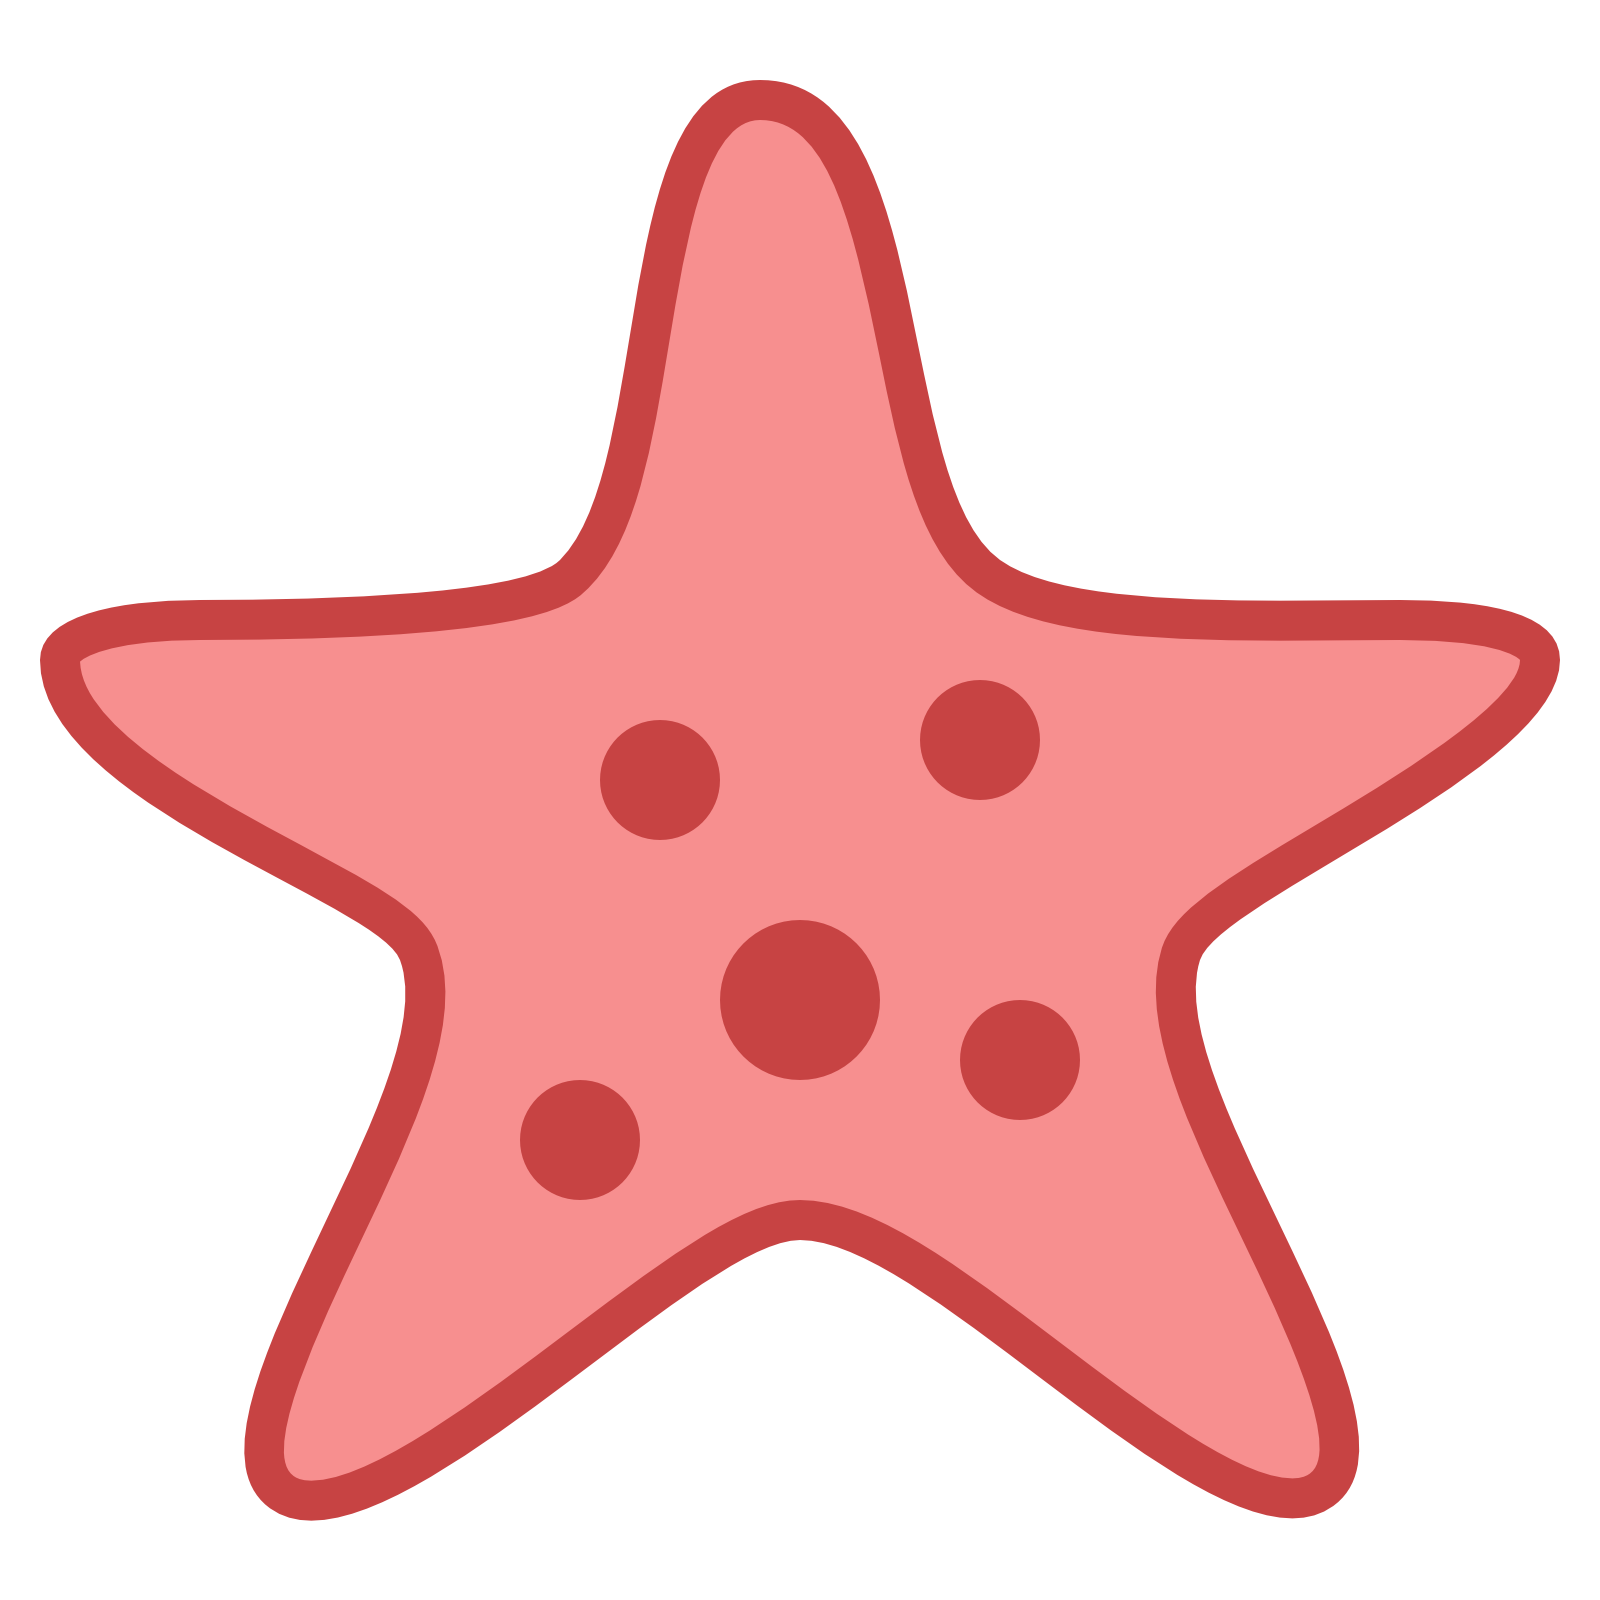 Starfish PNG images free download.